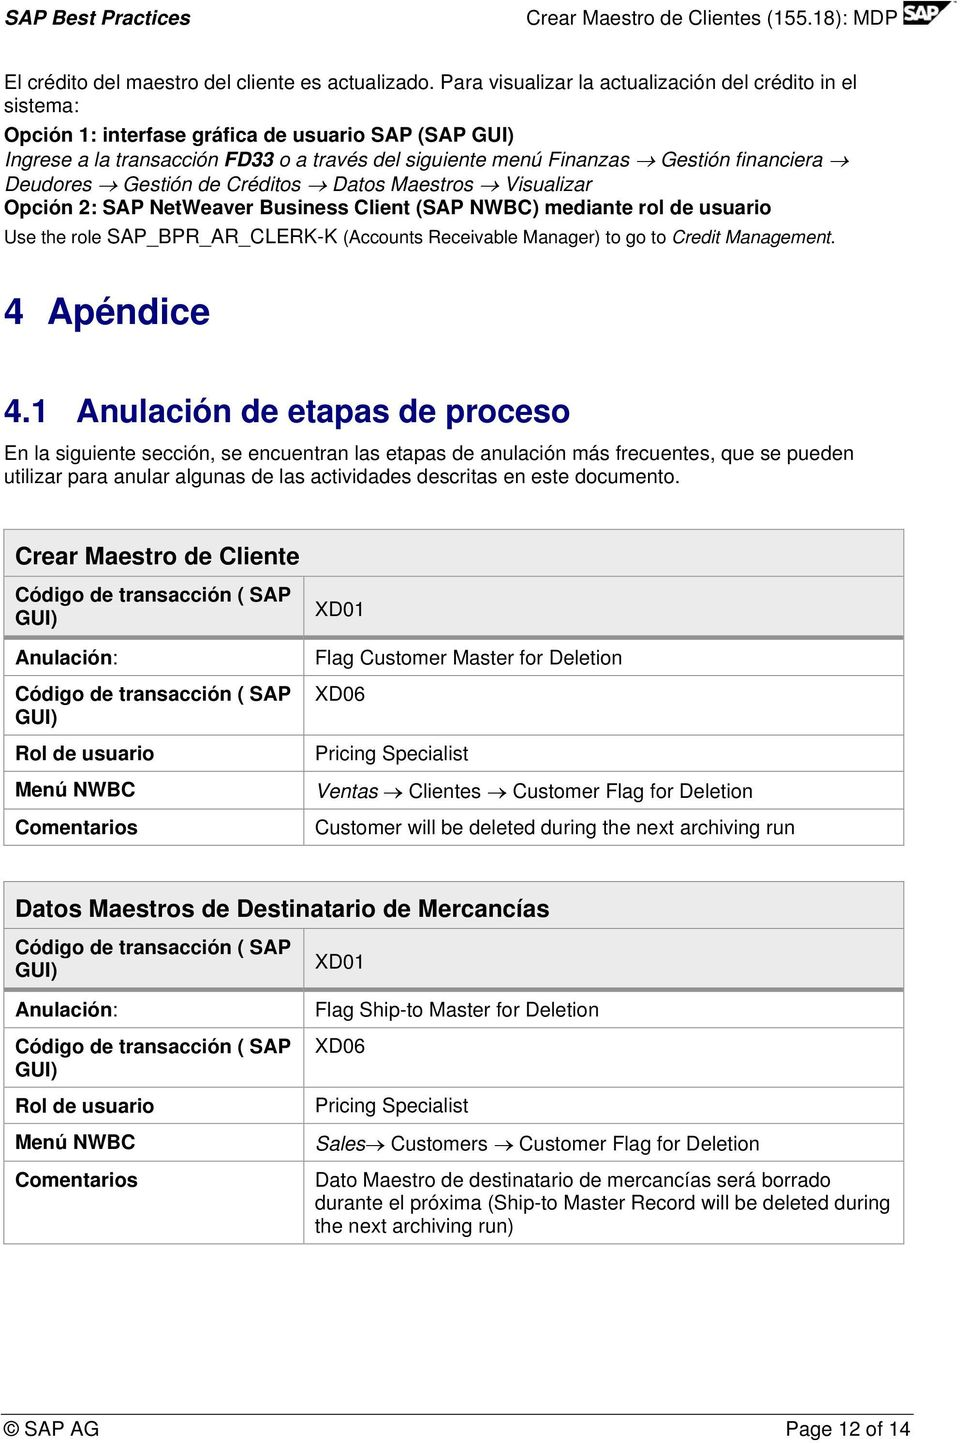 Deudores Gestión de Créditos Datos Maestros Visualizar Opción 2: SAP NetWeaver Business Client (SAP NWBC) mediante rol de usuario Use the role SAP_BPR_AR_CLERK-K (Accounts Receivable Manager) to go